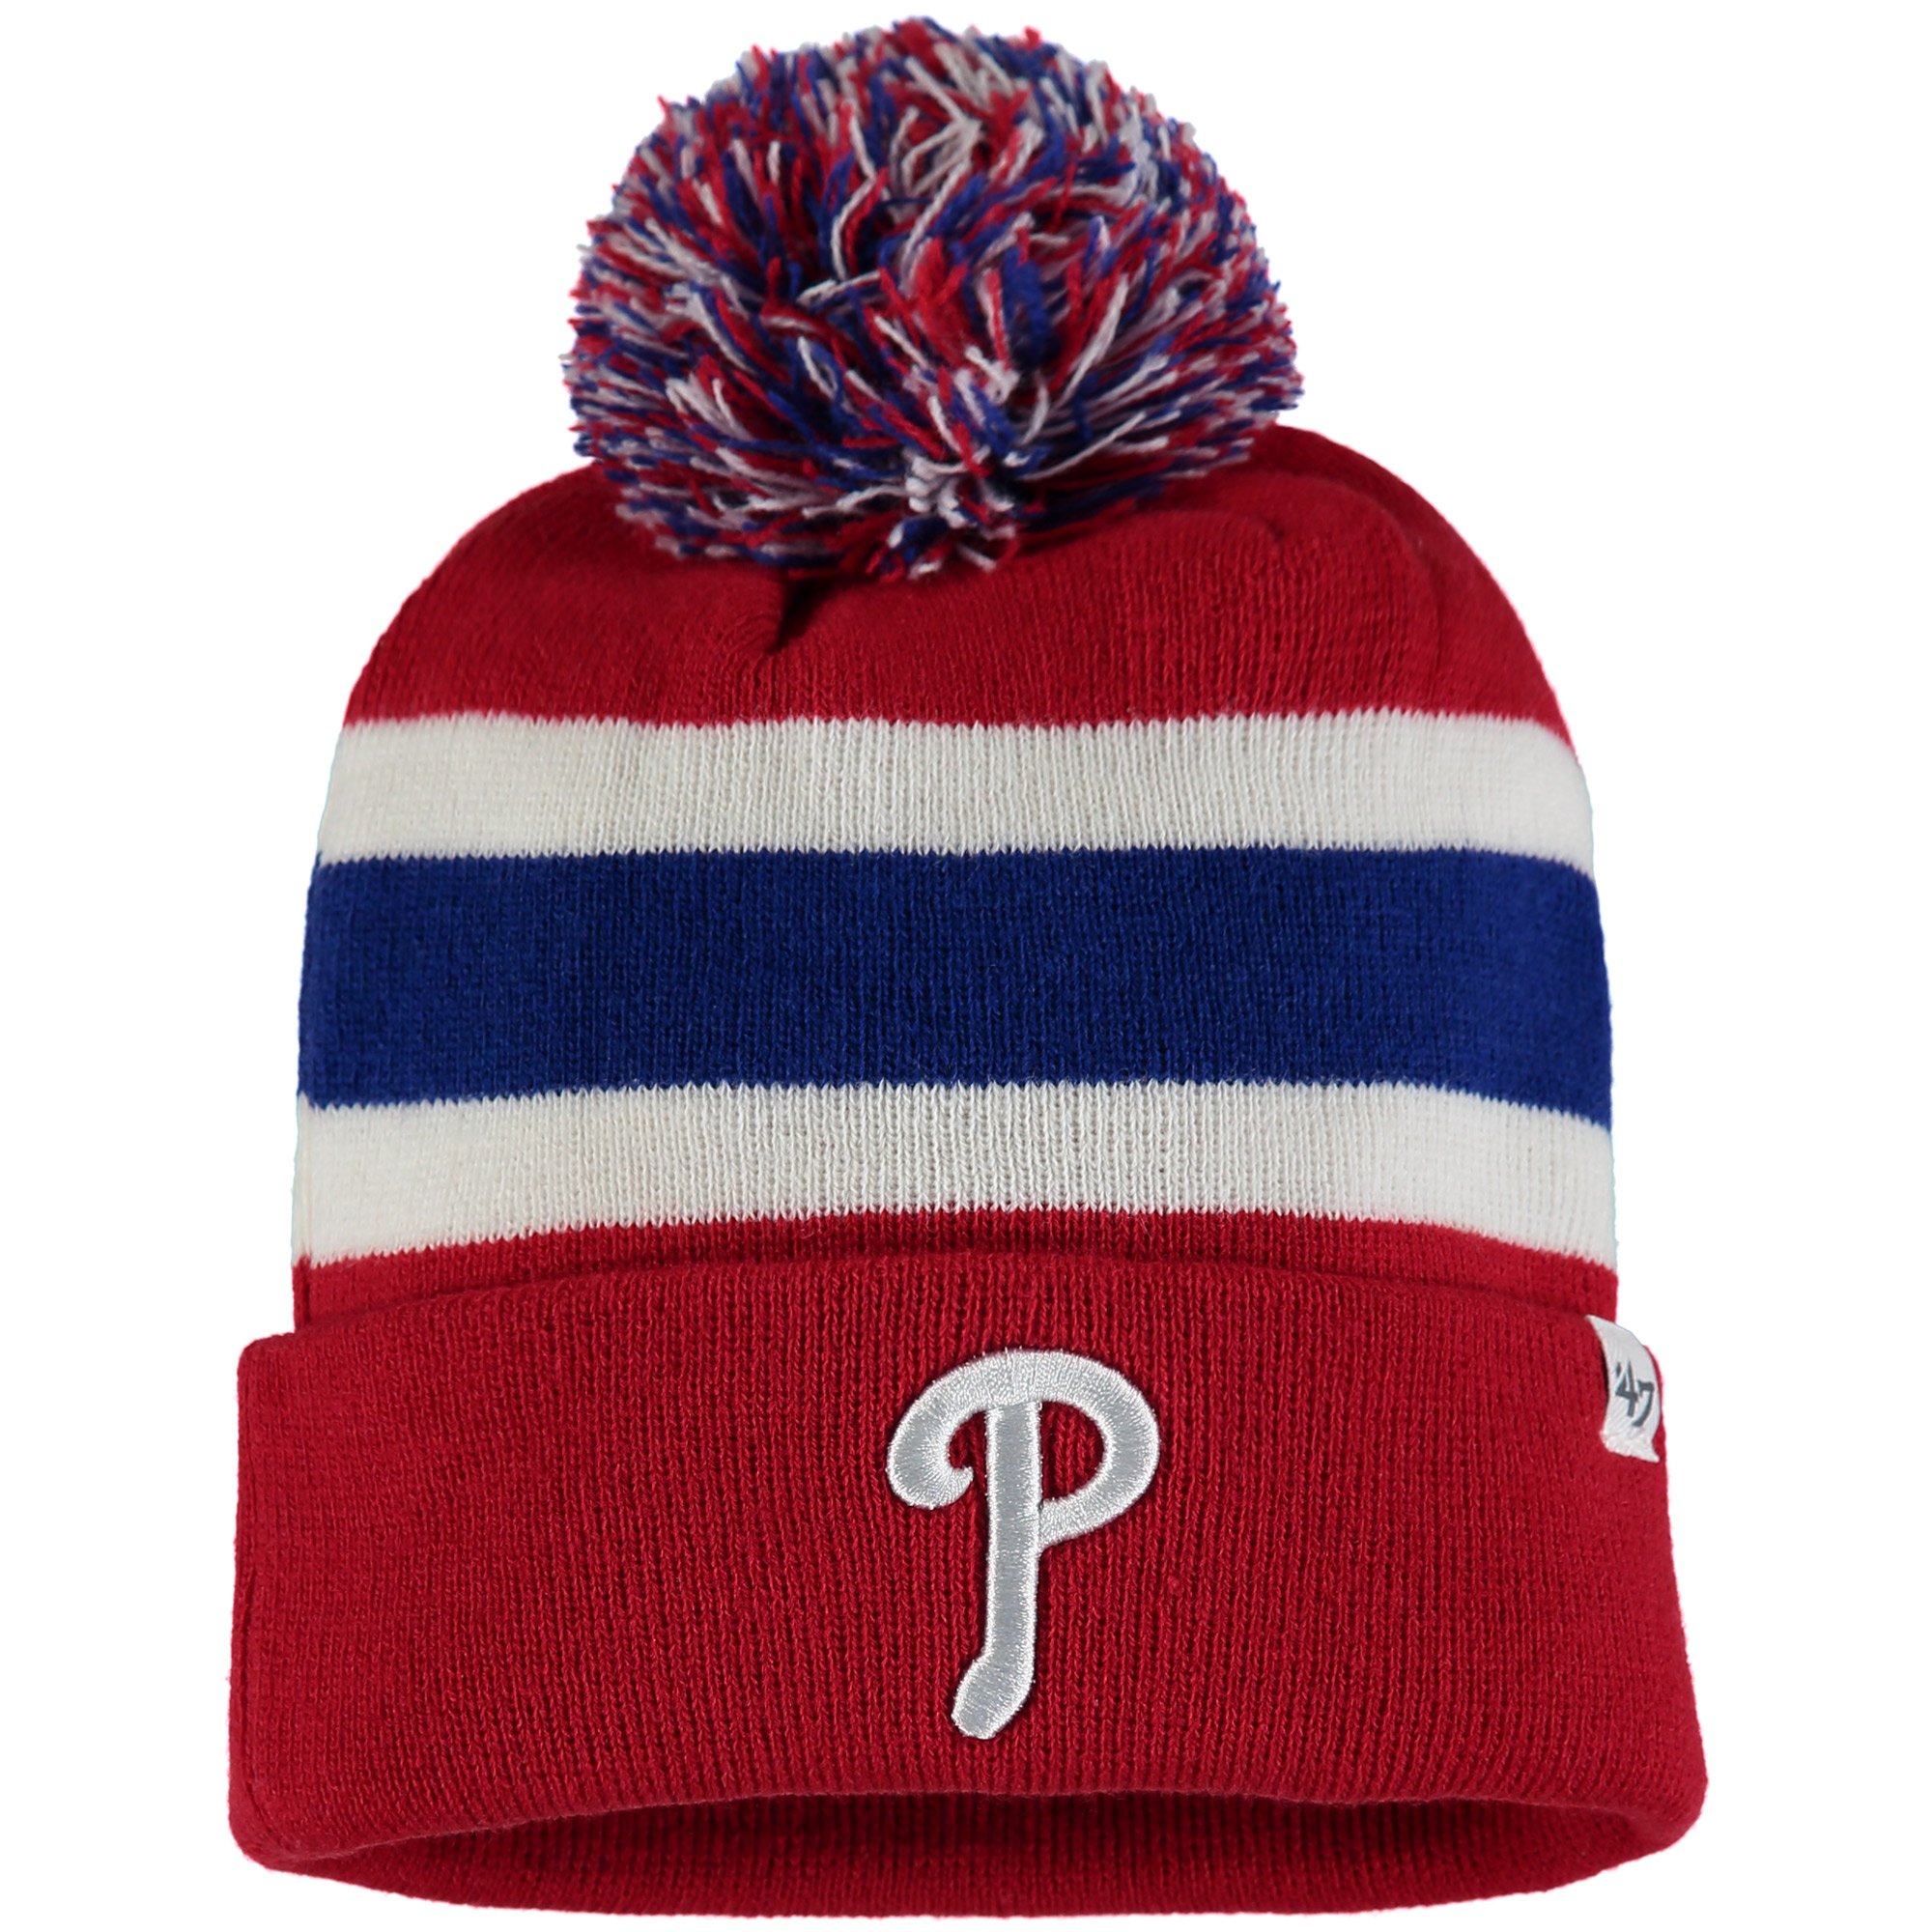 Philadelphia Phillies '47 Breakaway Cuffed Knit Hat with Pom - Red/Royal - OSFA